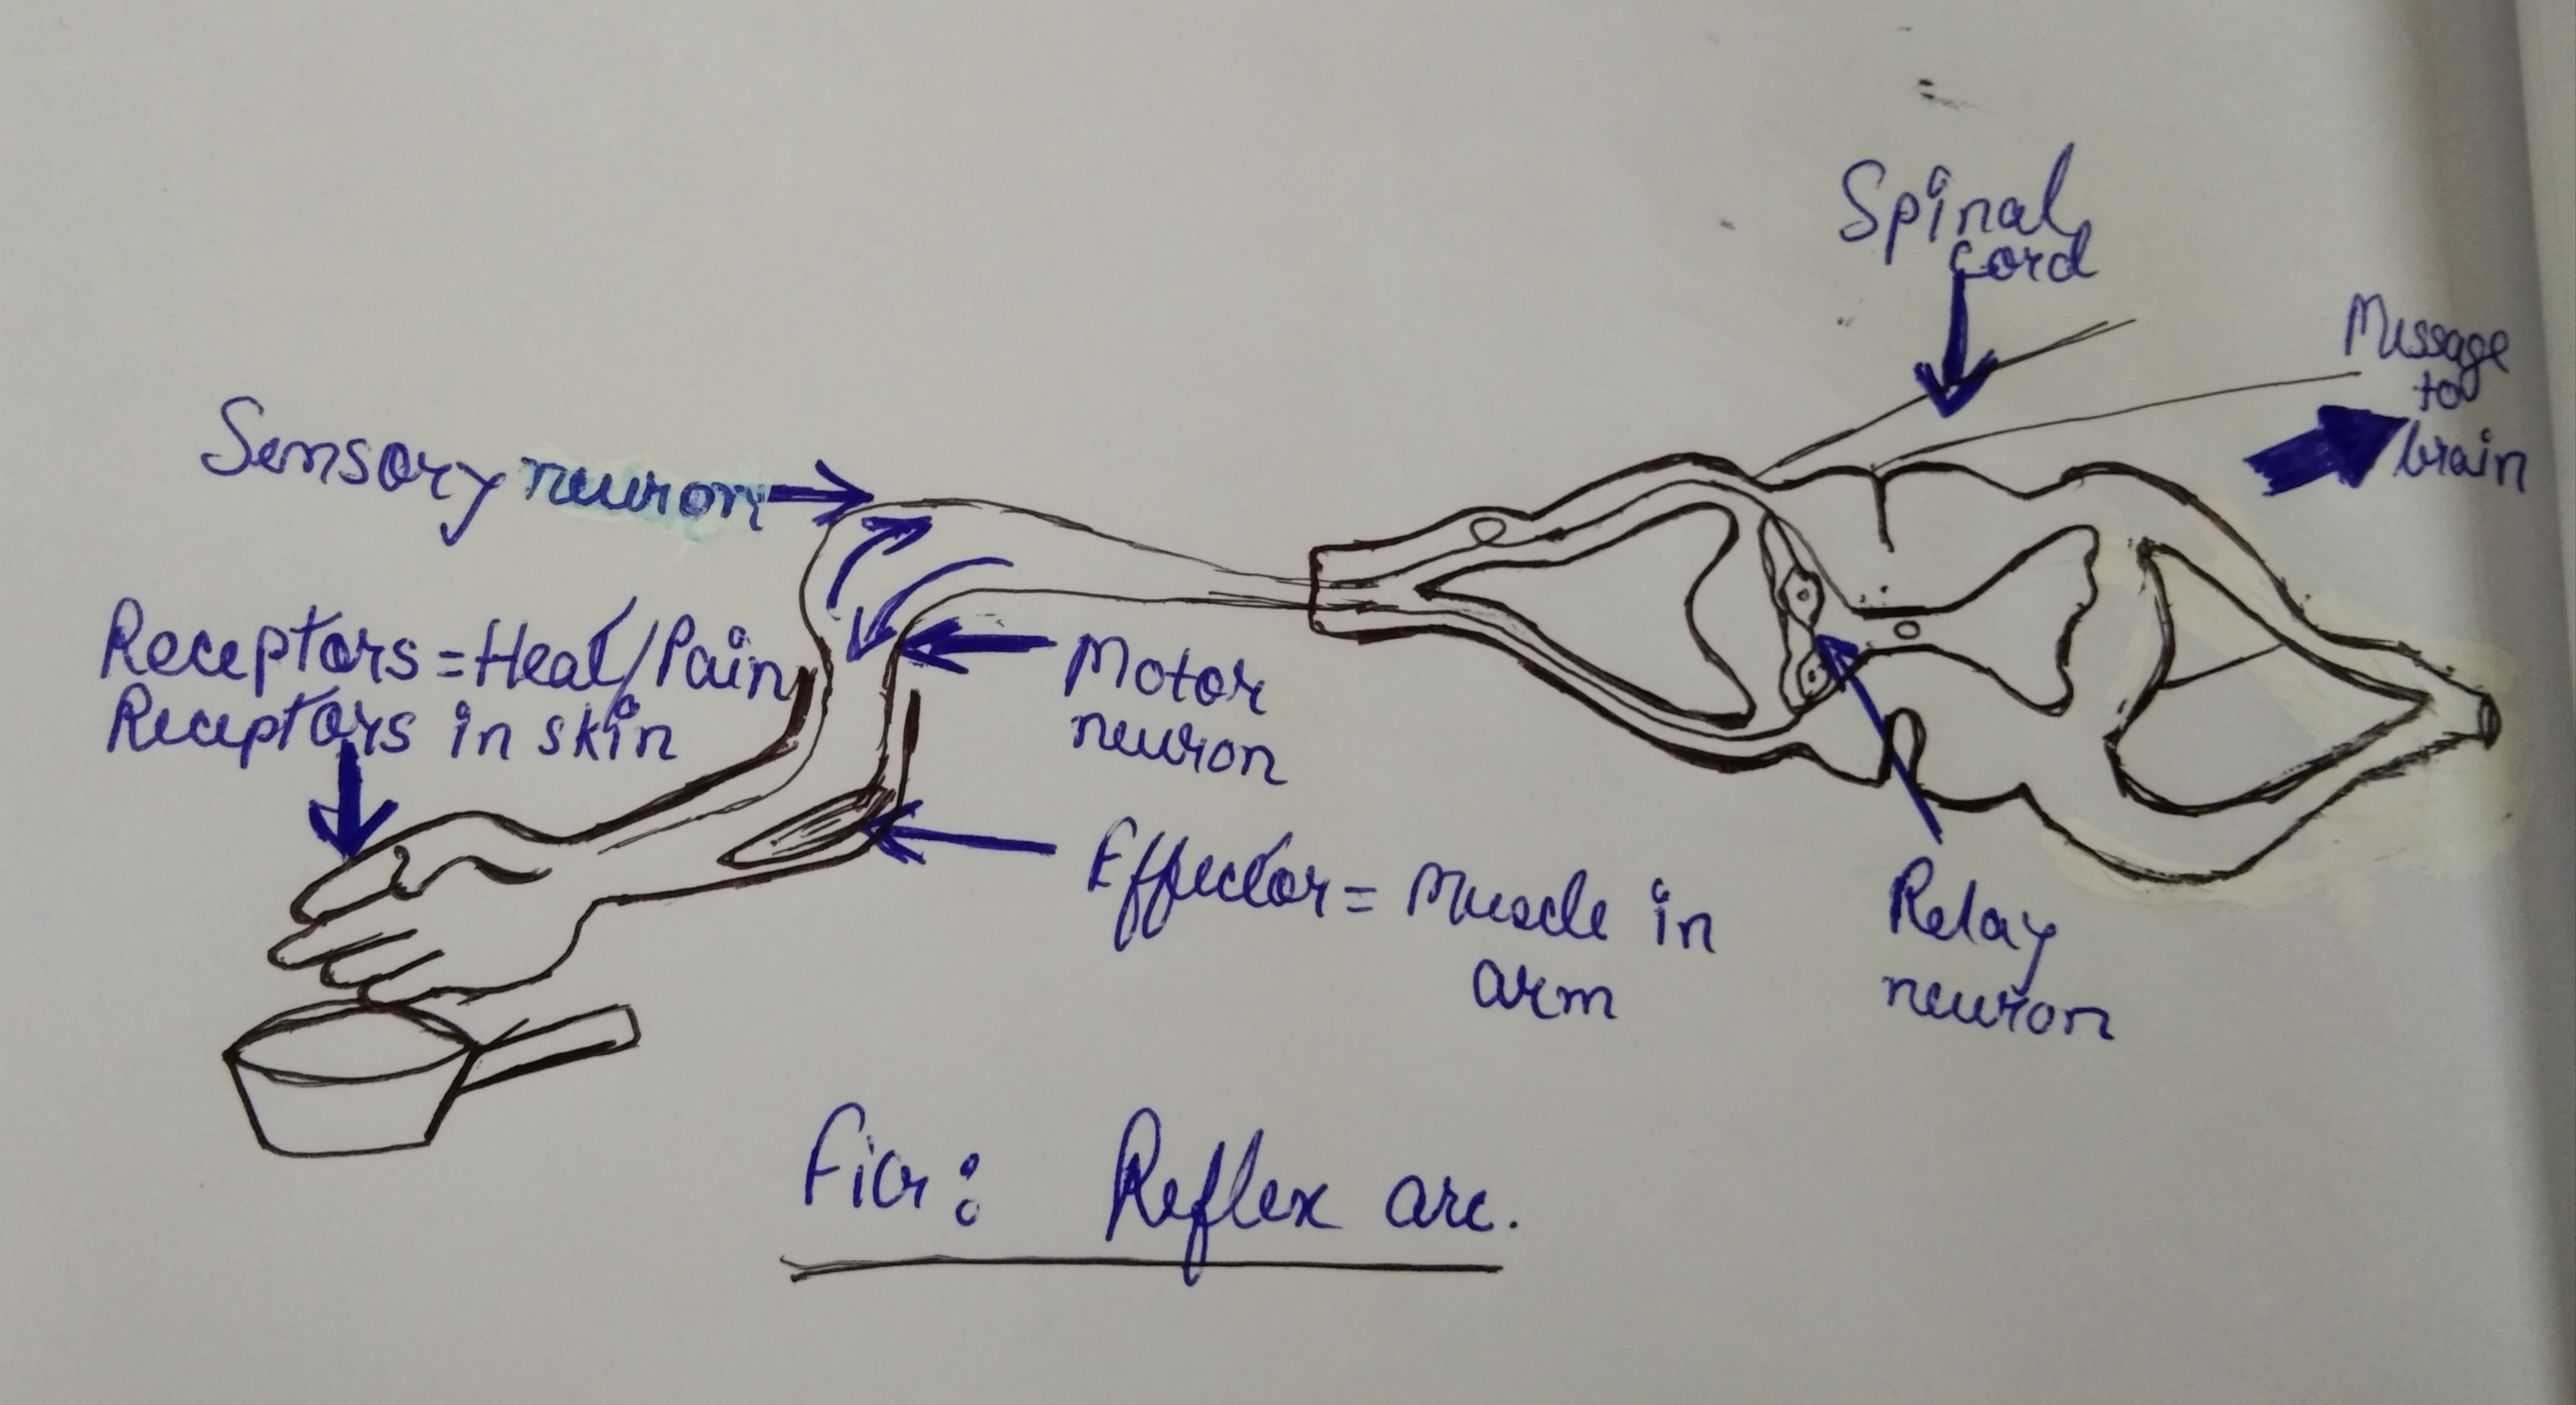 Define Reflex Arc Draw A Flow Chart Showing The Sequence